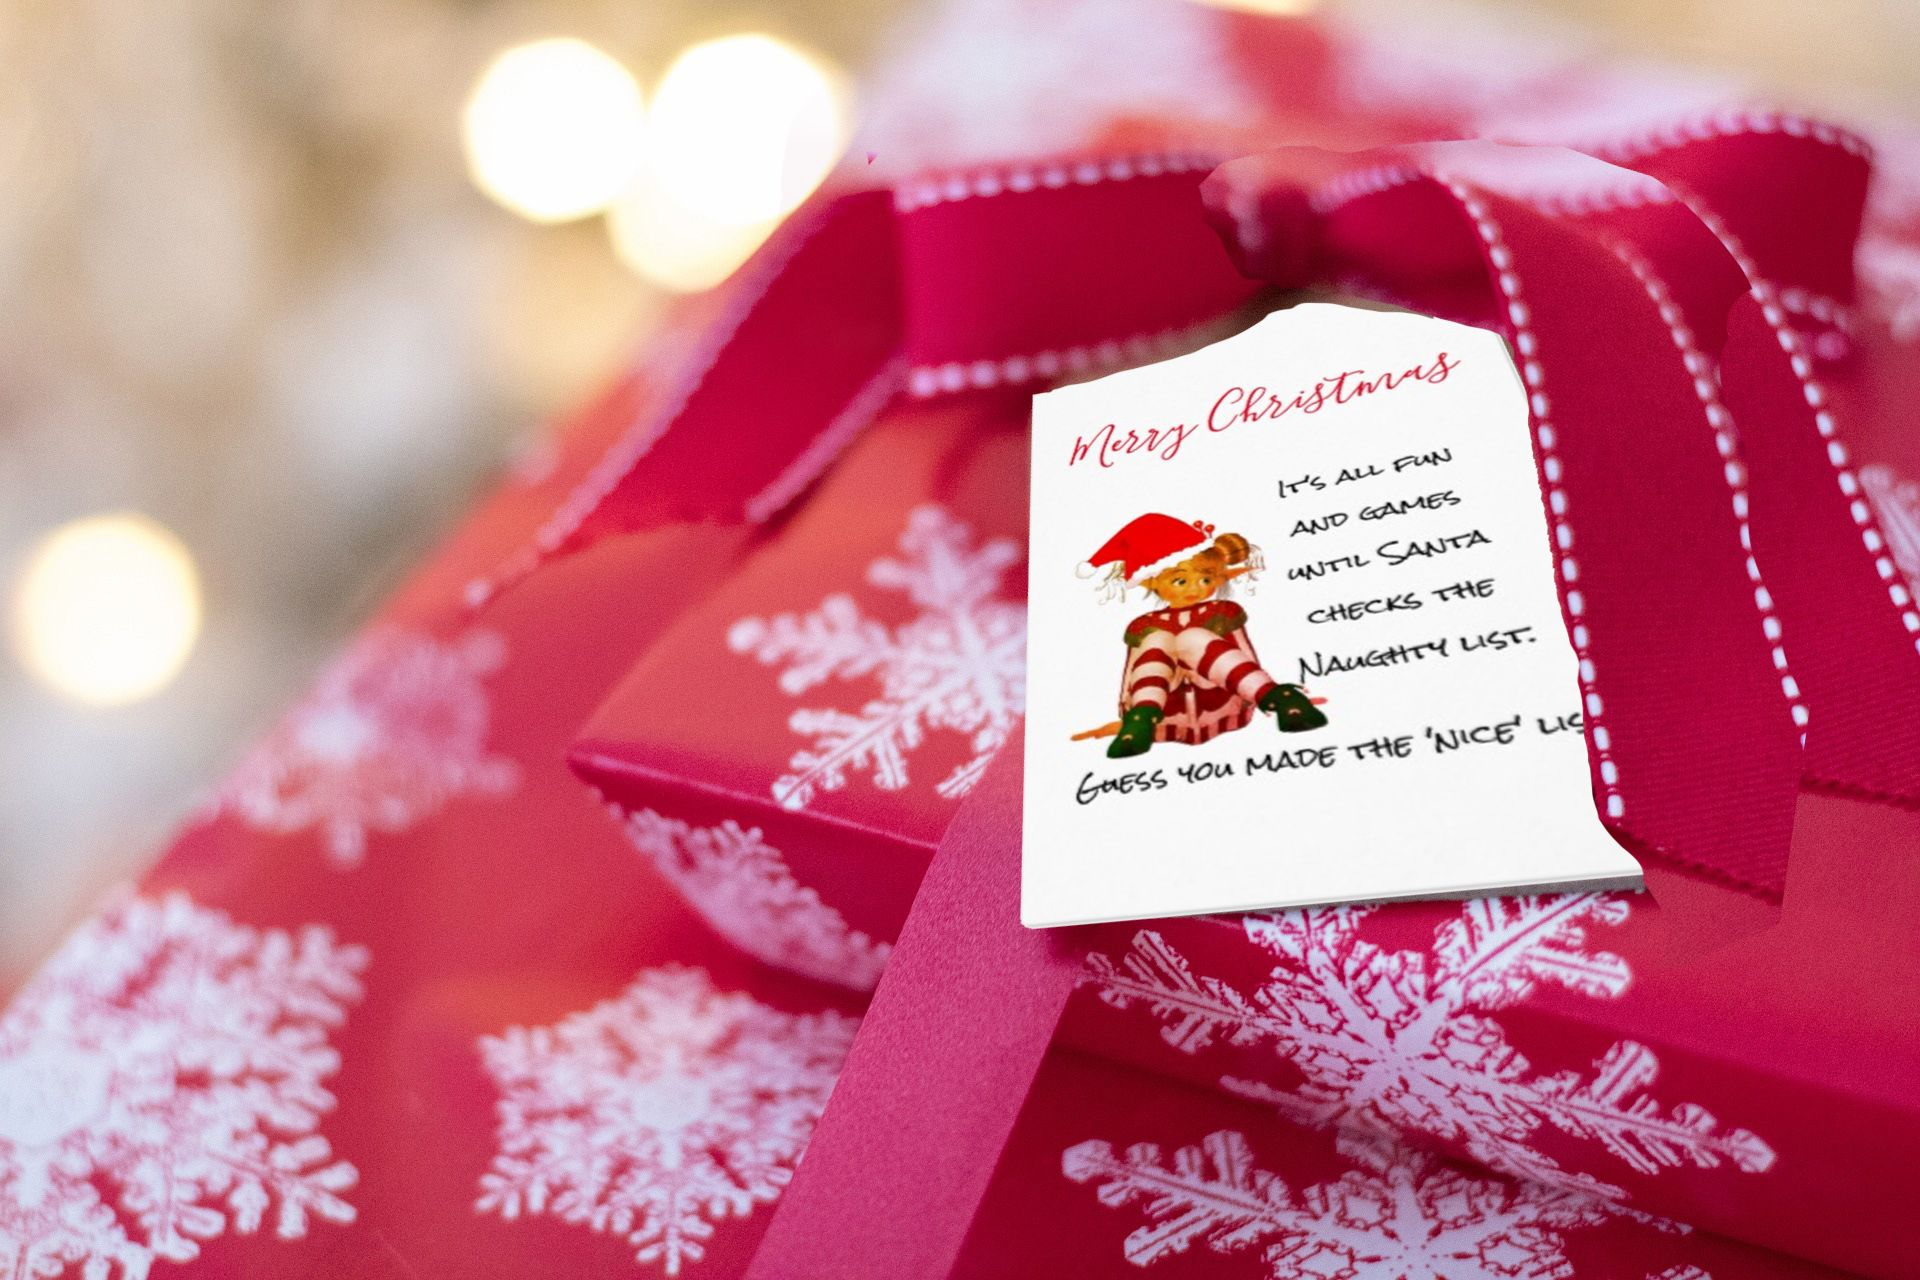 Funny Christmas Quotes Custom personal Christmas stationary and decorations with funny Christmas quotes 'christmasquotes#fun#funny#naughtybutnice#elf#believeinchristmas#believe#santa#zazzle#zazzlemade